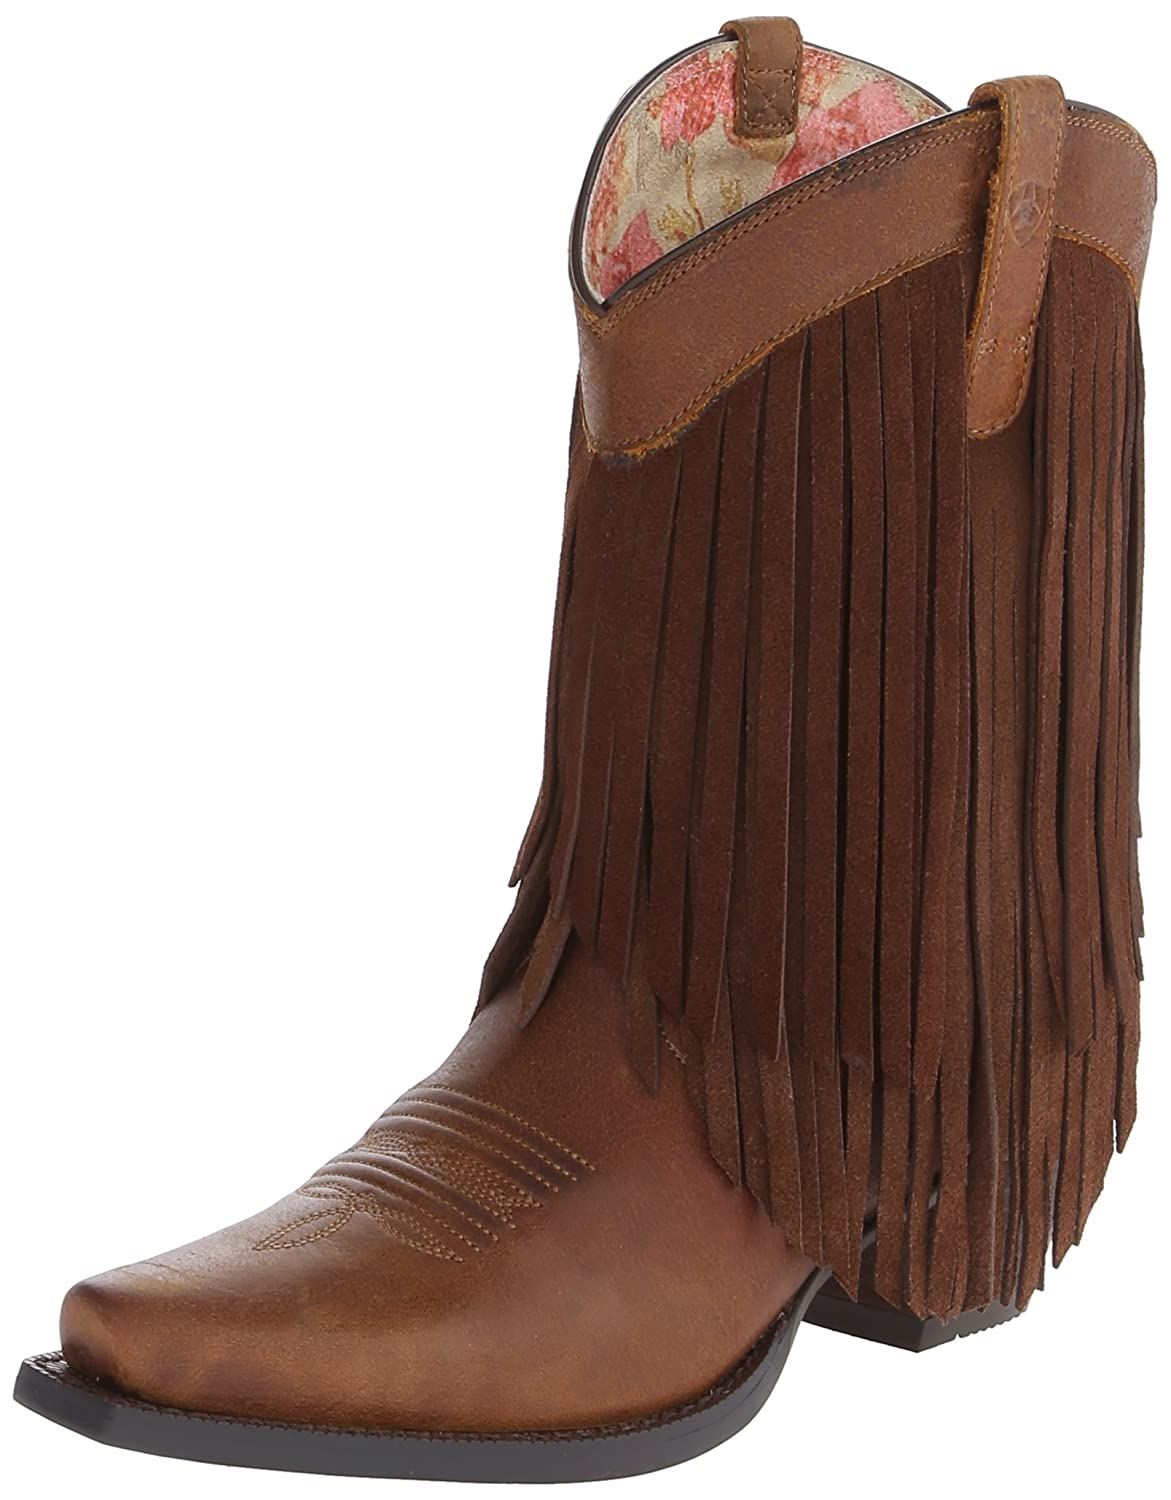 Ariat Women's Gold Rush Western Cowboy Boot B00IM5JVNM 10 B(M) US|Terra Brown